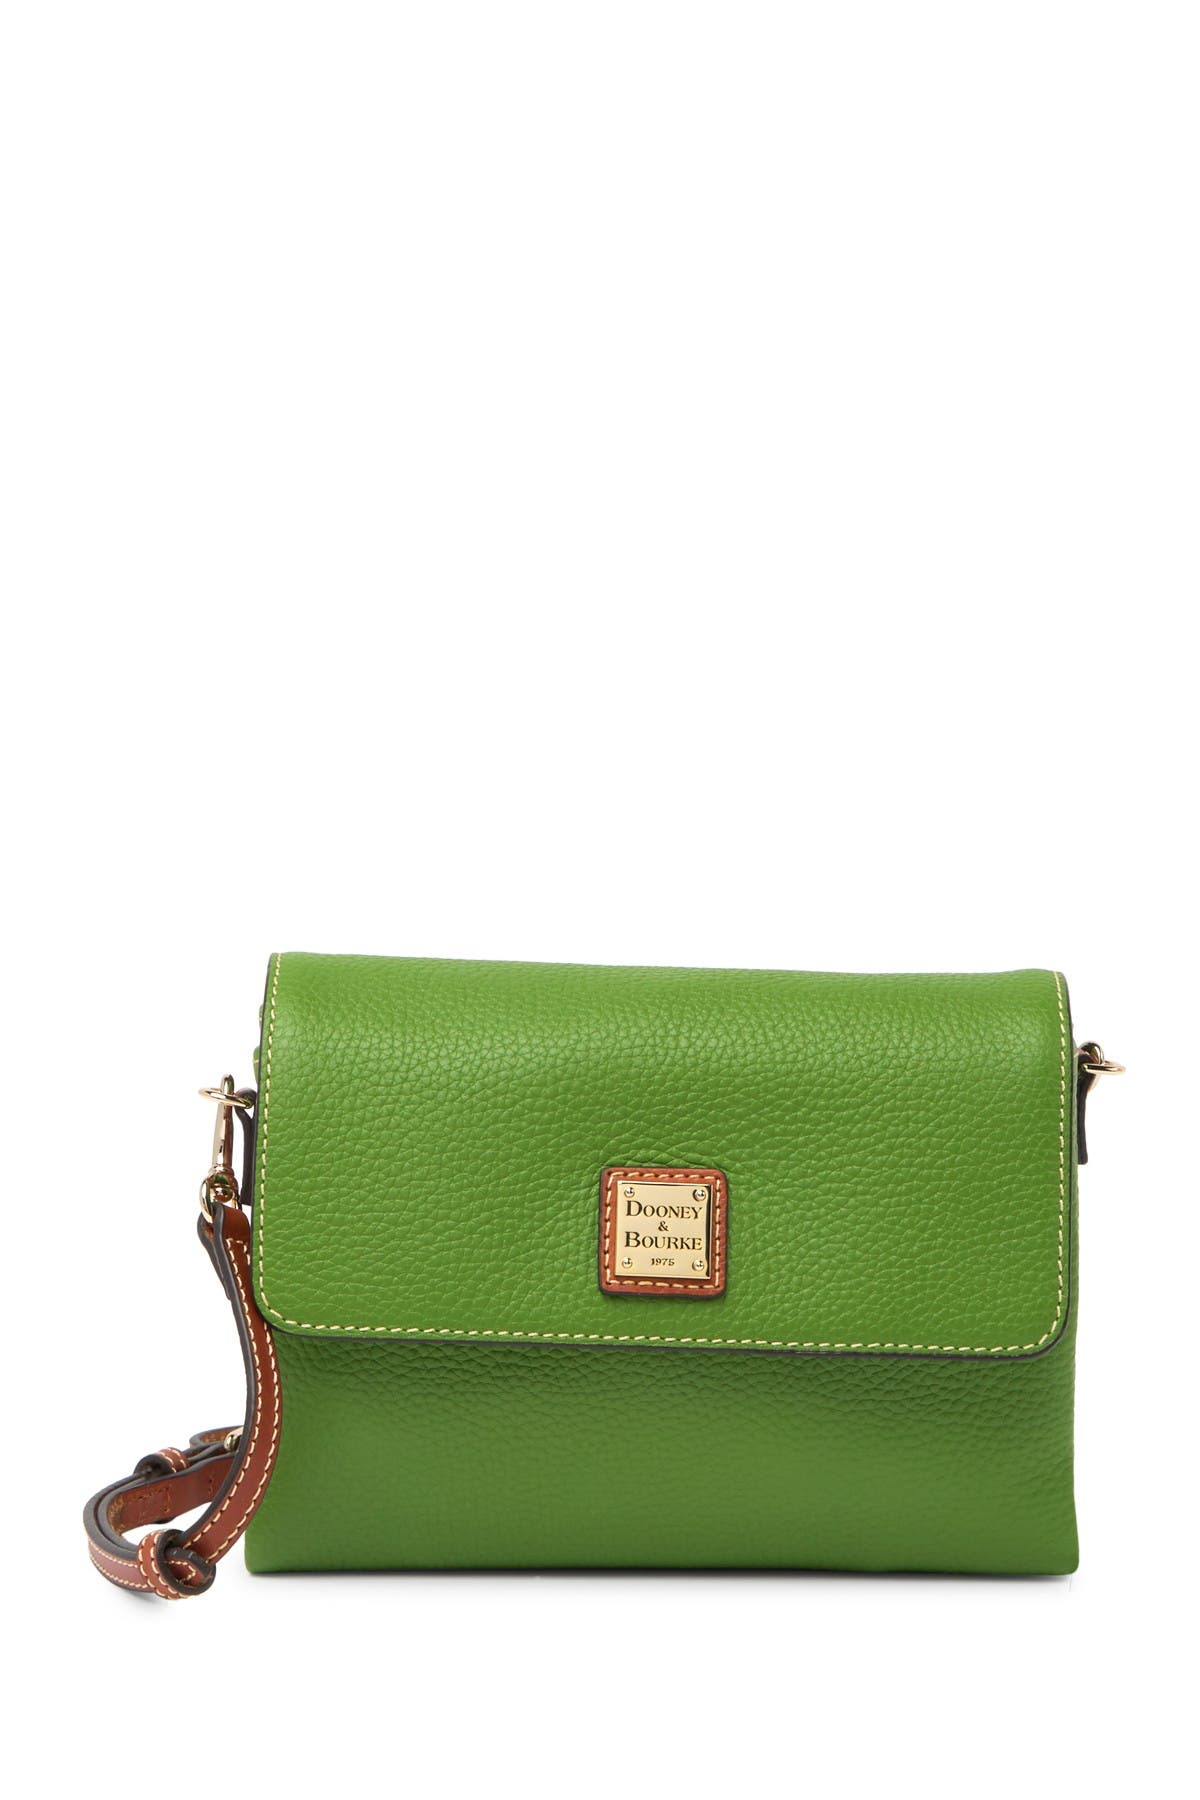 Image of Dooney & Bourke Hunter Leather Crossbody Bag